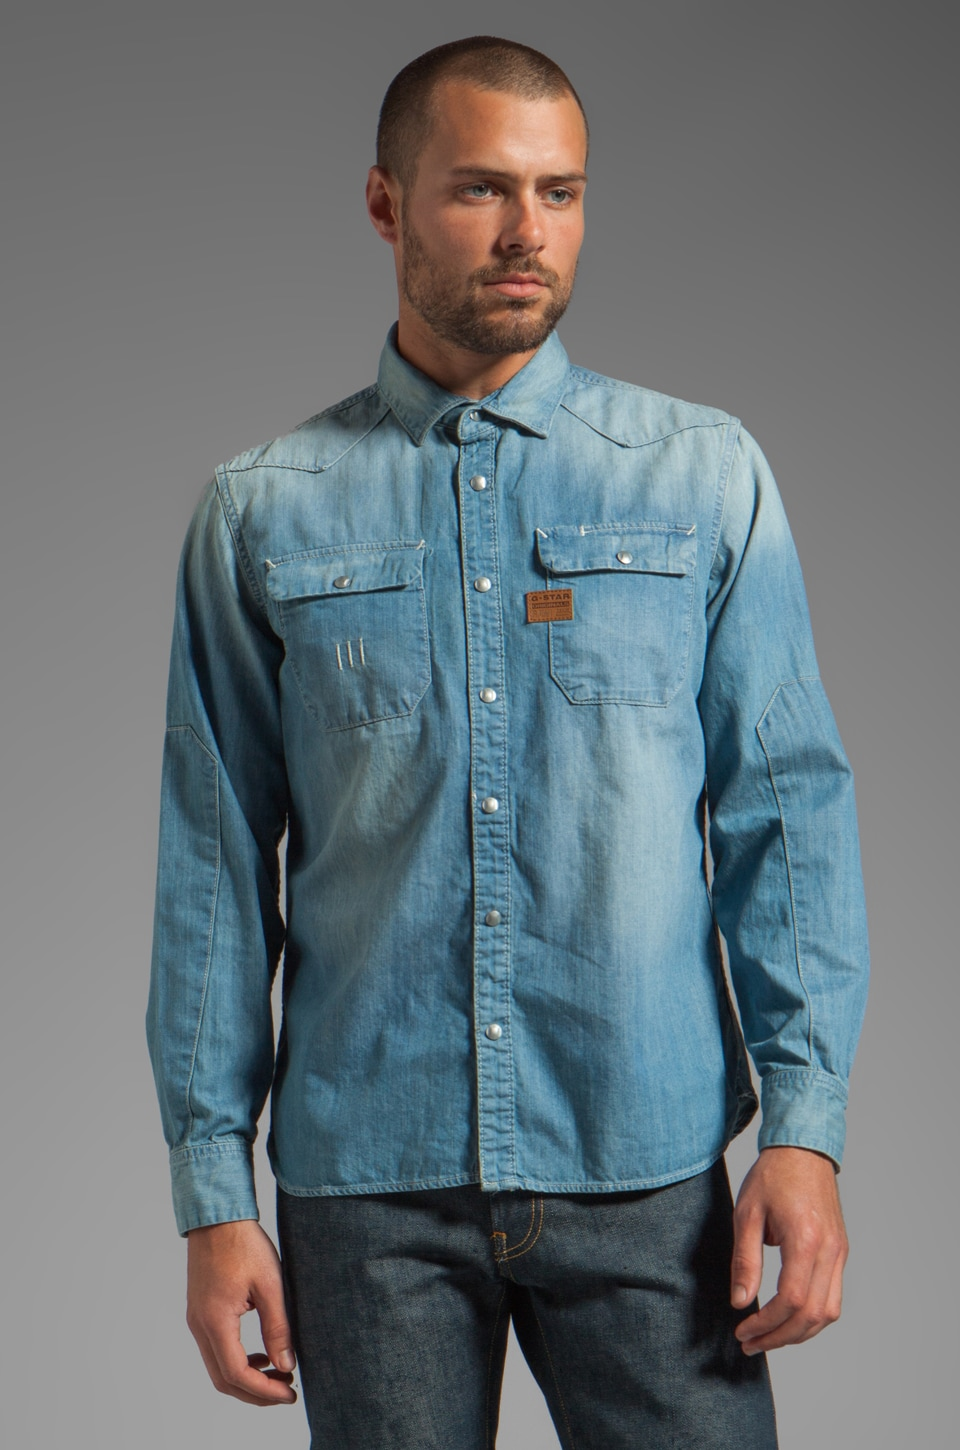 G-Star Construct Long Sleeve Denim Shirt in Light Aged